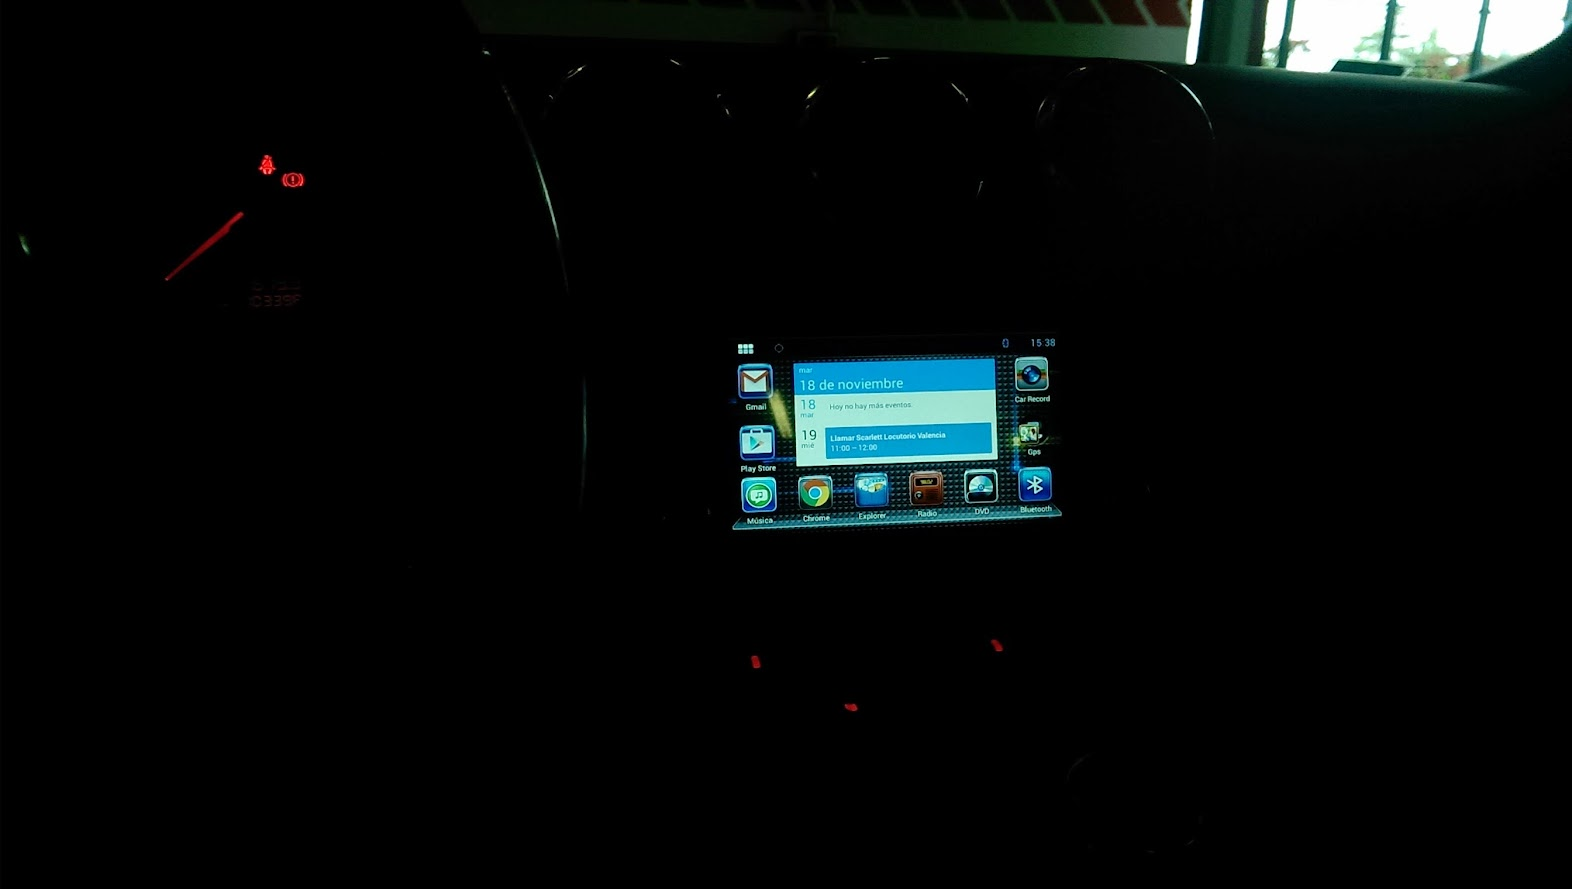 The Audi TT Forum • View topic - MTCB Android Head Unit